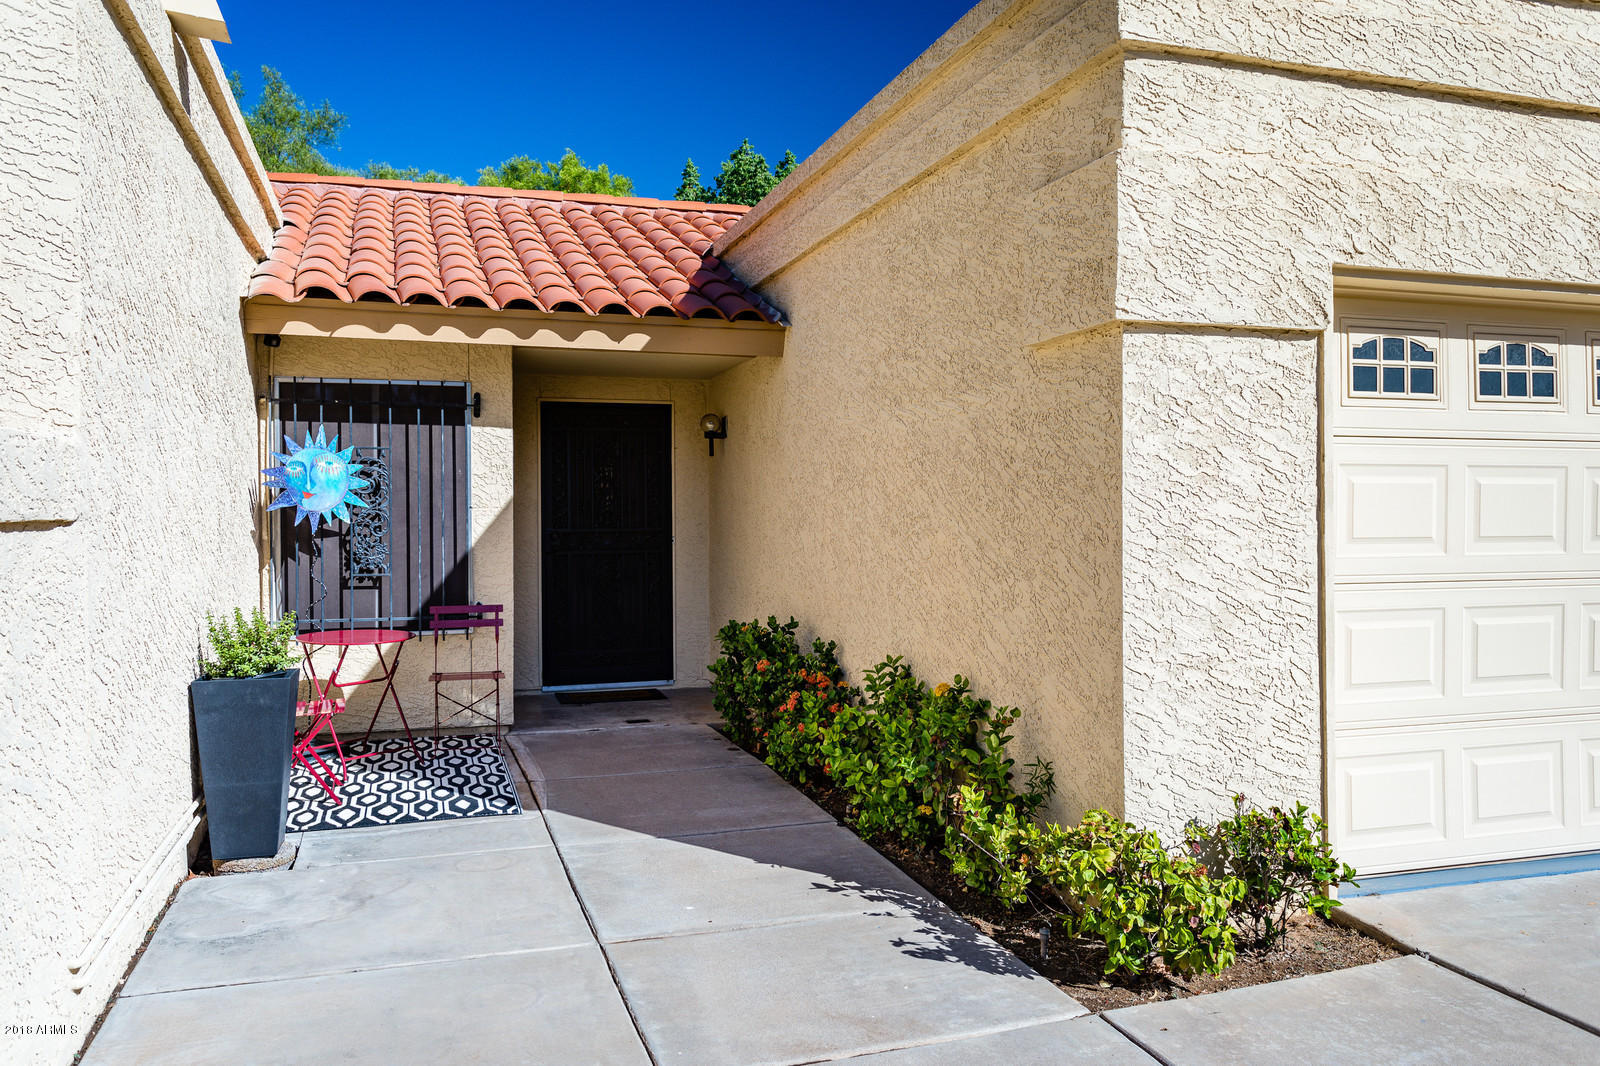 THIS IS THE BEST DEAL IN McCORMICK RANCH SCOTTSDALE!! Since 2/1/18 ONLY 4 other Town/Patio Homes have SOLD FOR LESS within a 1-mile radius of CAVERNA, ...